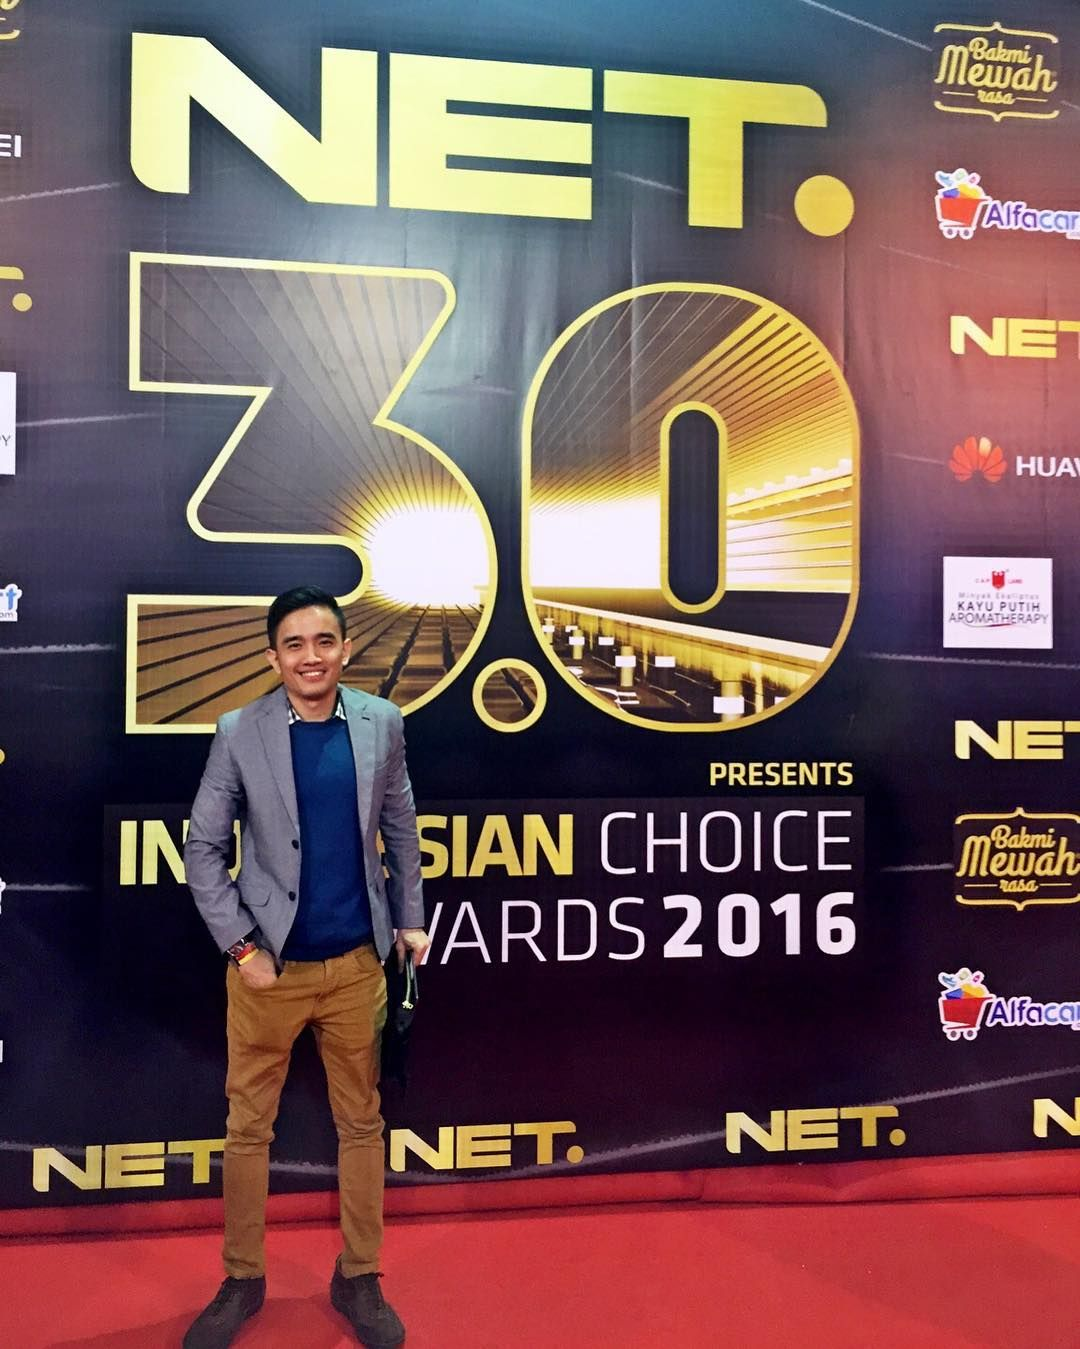 Attending for NET 3.0 anniversary #indonesialebihkece #nettv #anniversary #rizky #founder #brizentertainment by briz_entertainment